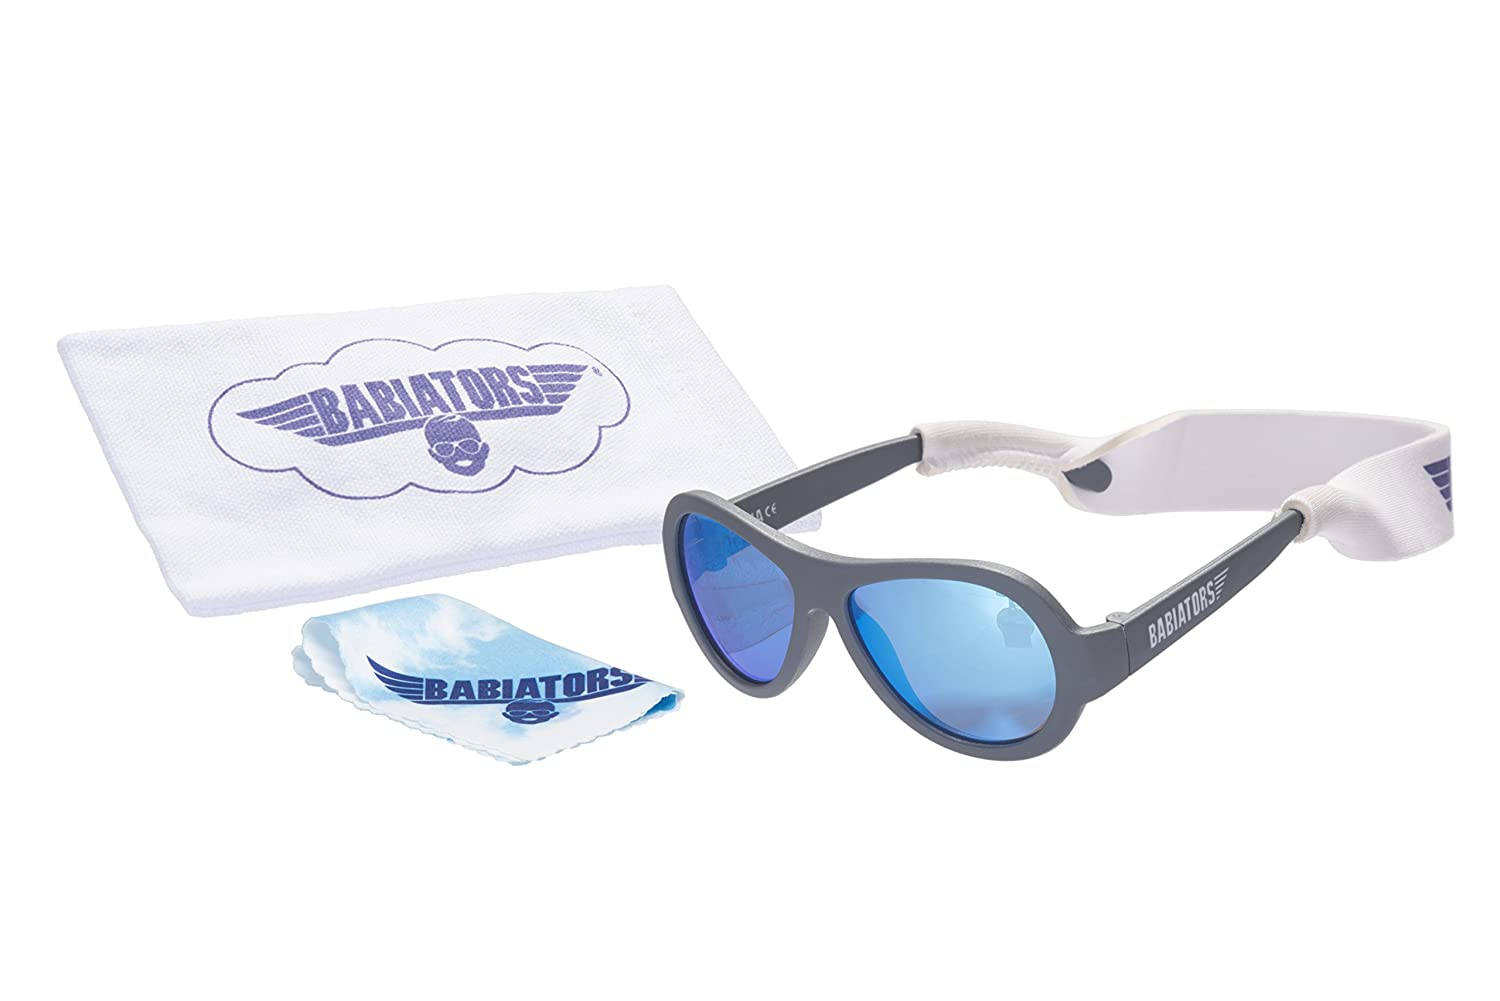 a7238594977 Amazon.com   Babiators Gift Set  Original Sunglasses (Junior Ages 0-3) +  Ready to Fly Accessory Pack (True Blue)   Baby